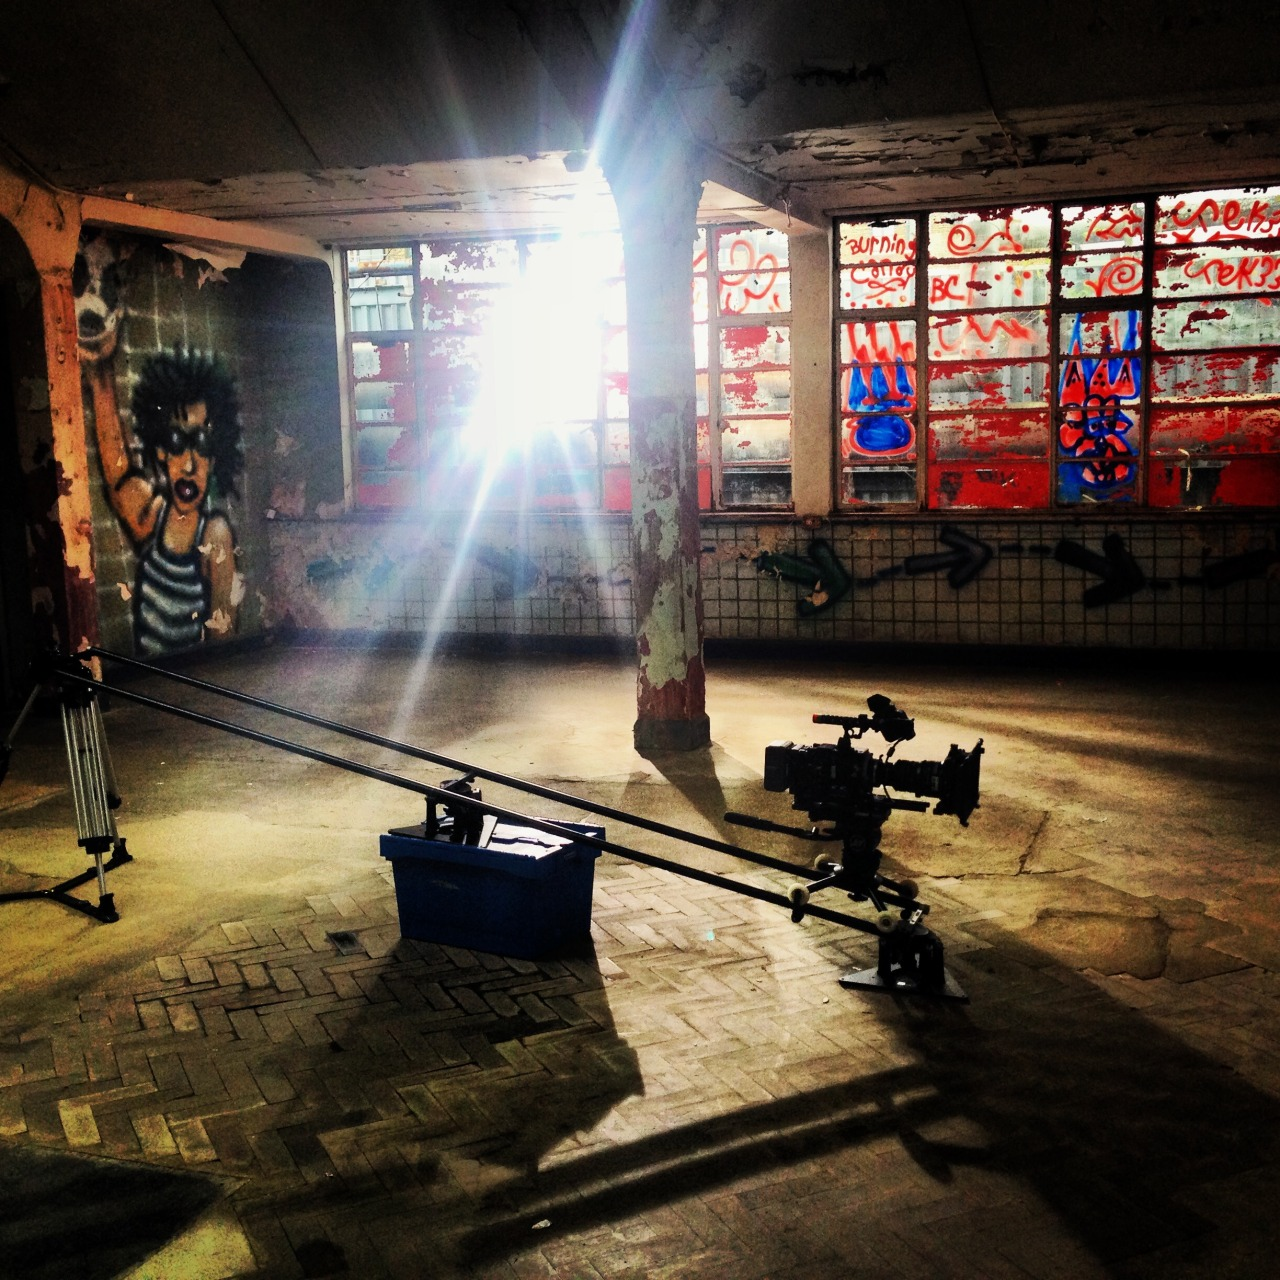 I've finally got the opportunity to direct a new Discovery series in my old backyard - East London.  In the picture above, we're lighting a warehouse location in the Old Truman Brewery on Bricklane. It's a new show - working title is 'Control Freaks' hence the slightly menacing setting.  Our presenters, including Alex Conran from the 'Real Hustle' test out theories about human psychology on members of the public.  On air in late 2014.